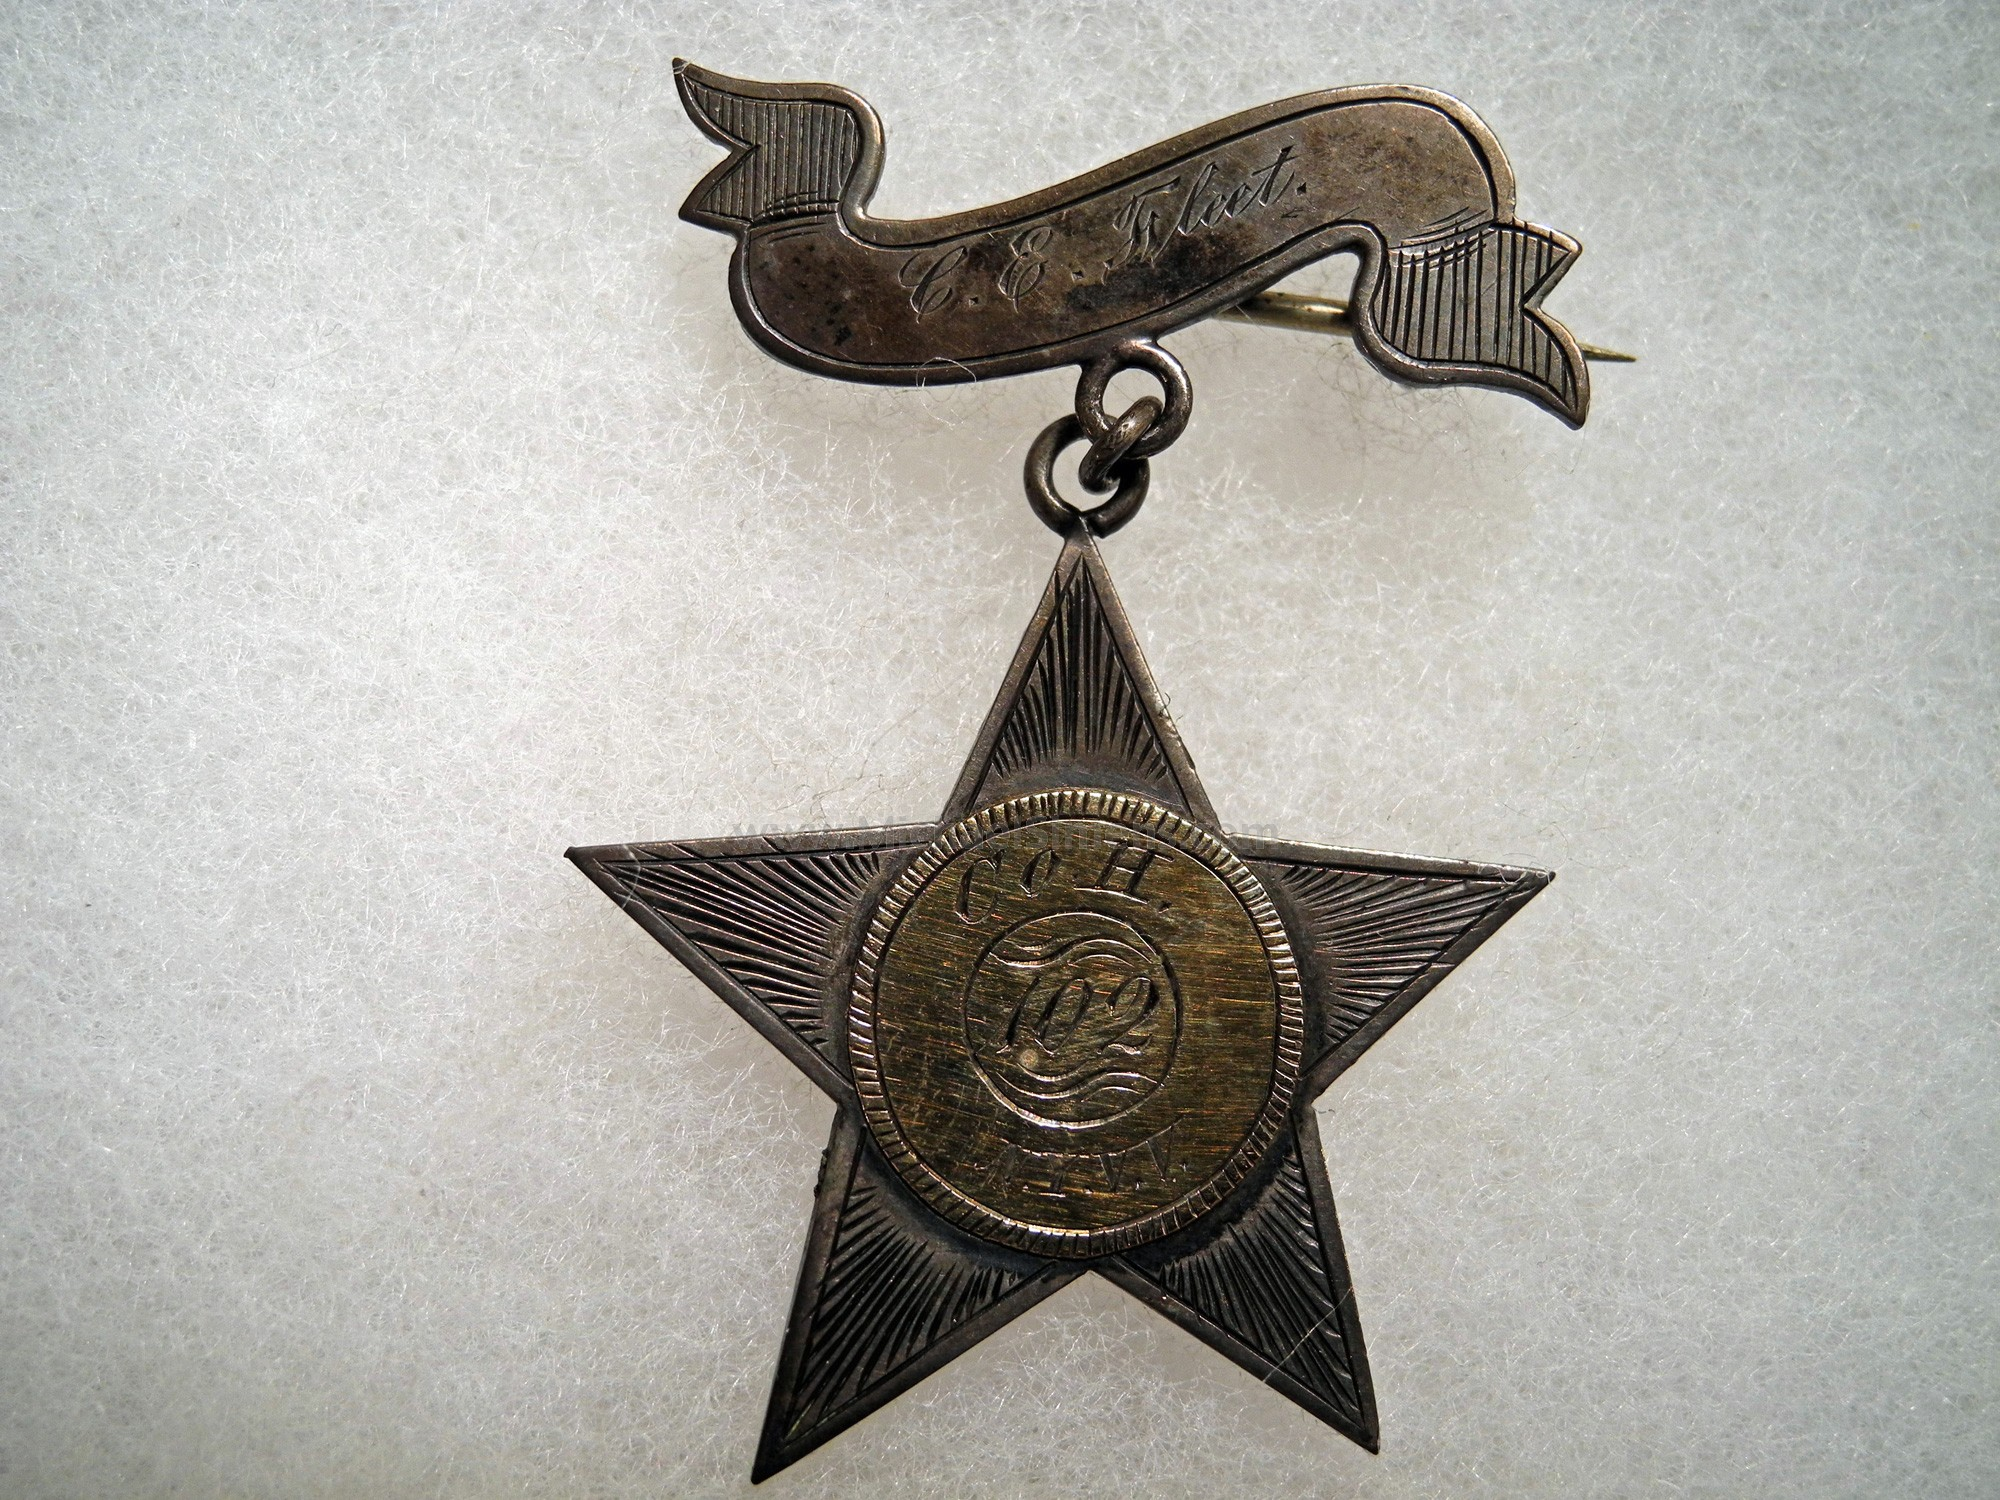 CORPS BADGE OF SOLID GOLD & SILVER, CIVIL WAR - 102nd NEW YORK